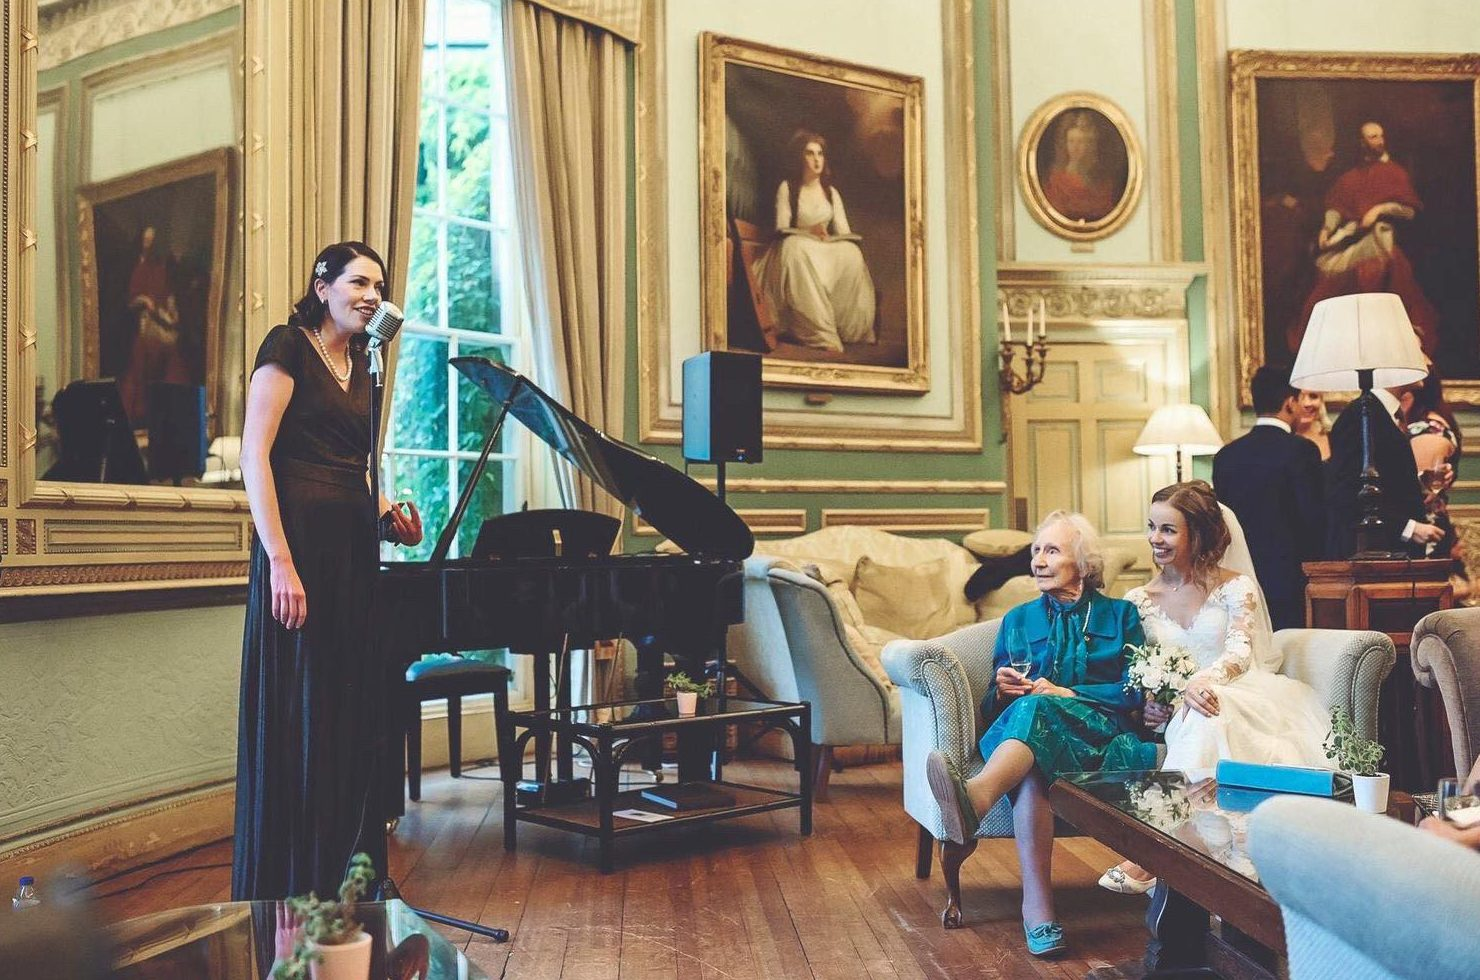 Paula Marie performs at a luxury wedding venue in Masham, North Yorkshire.